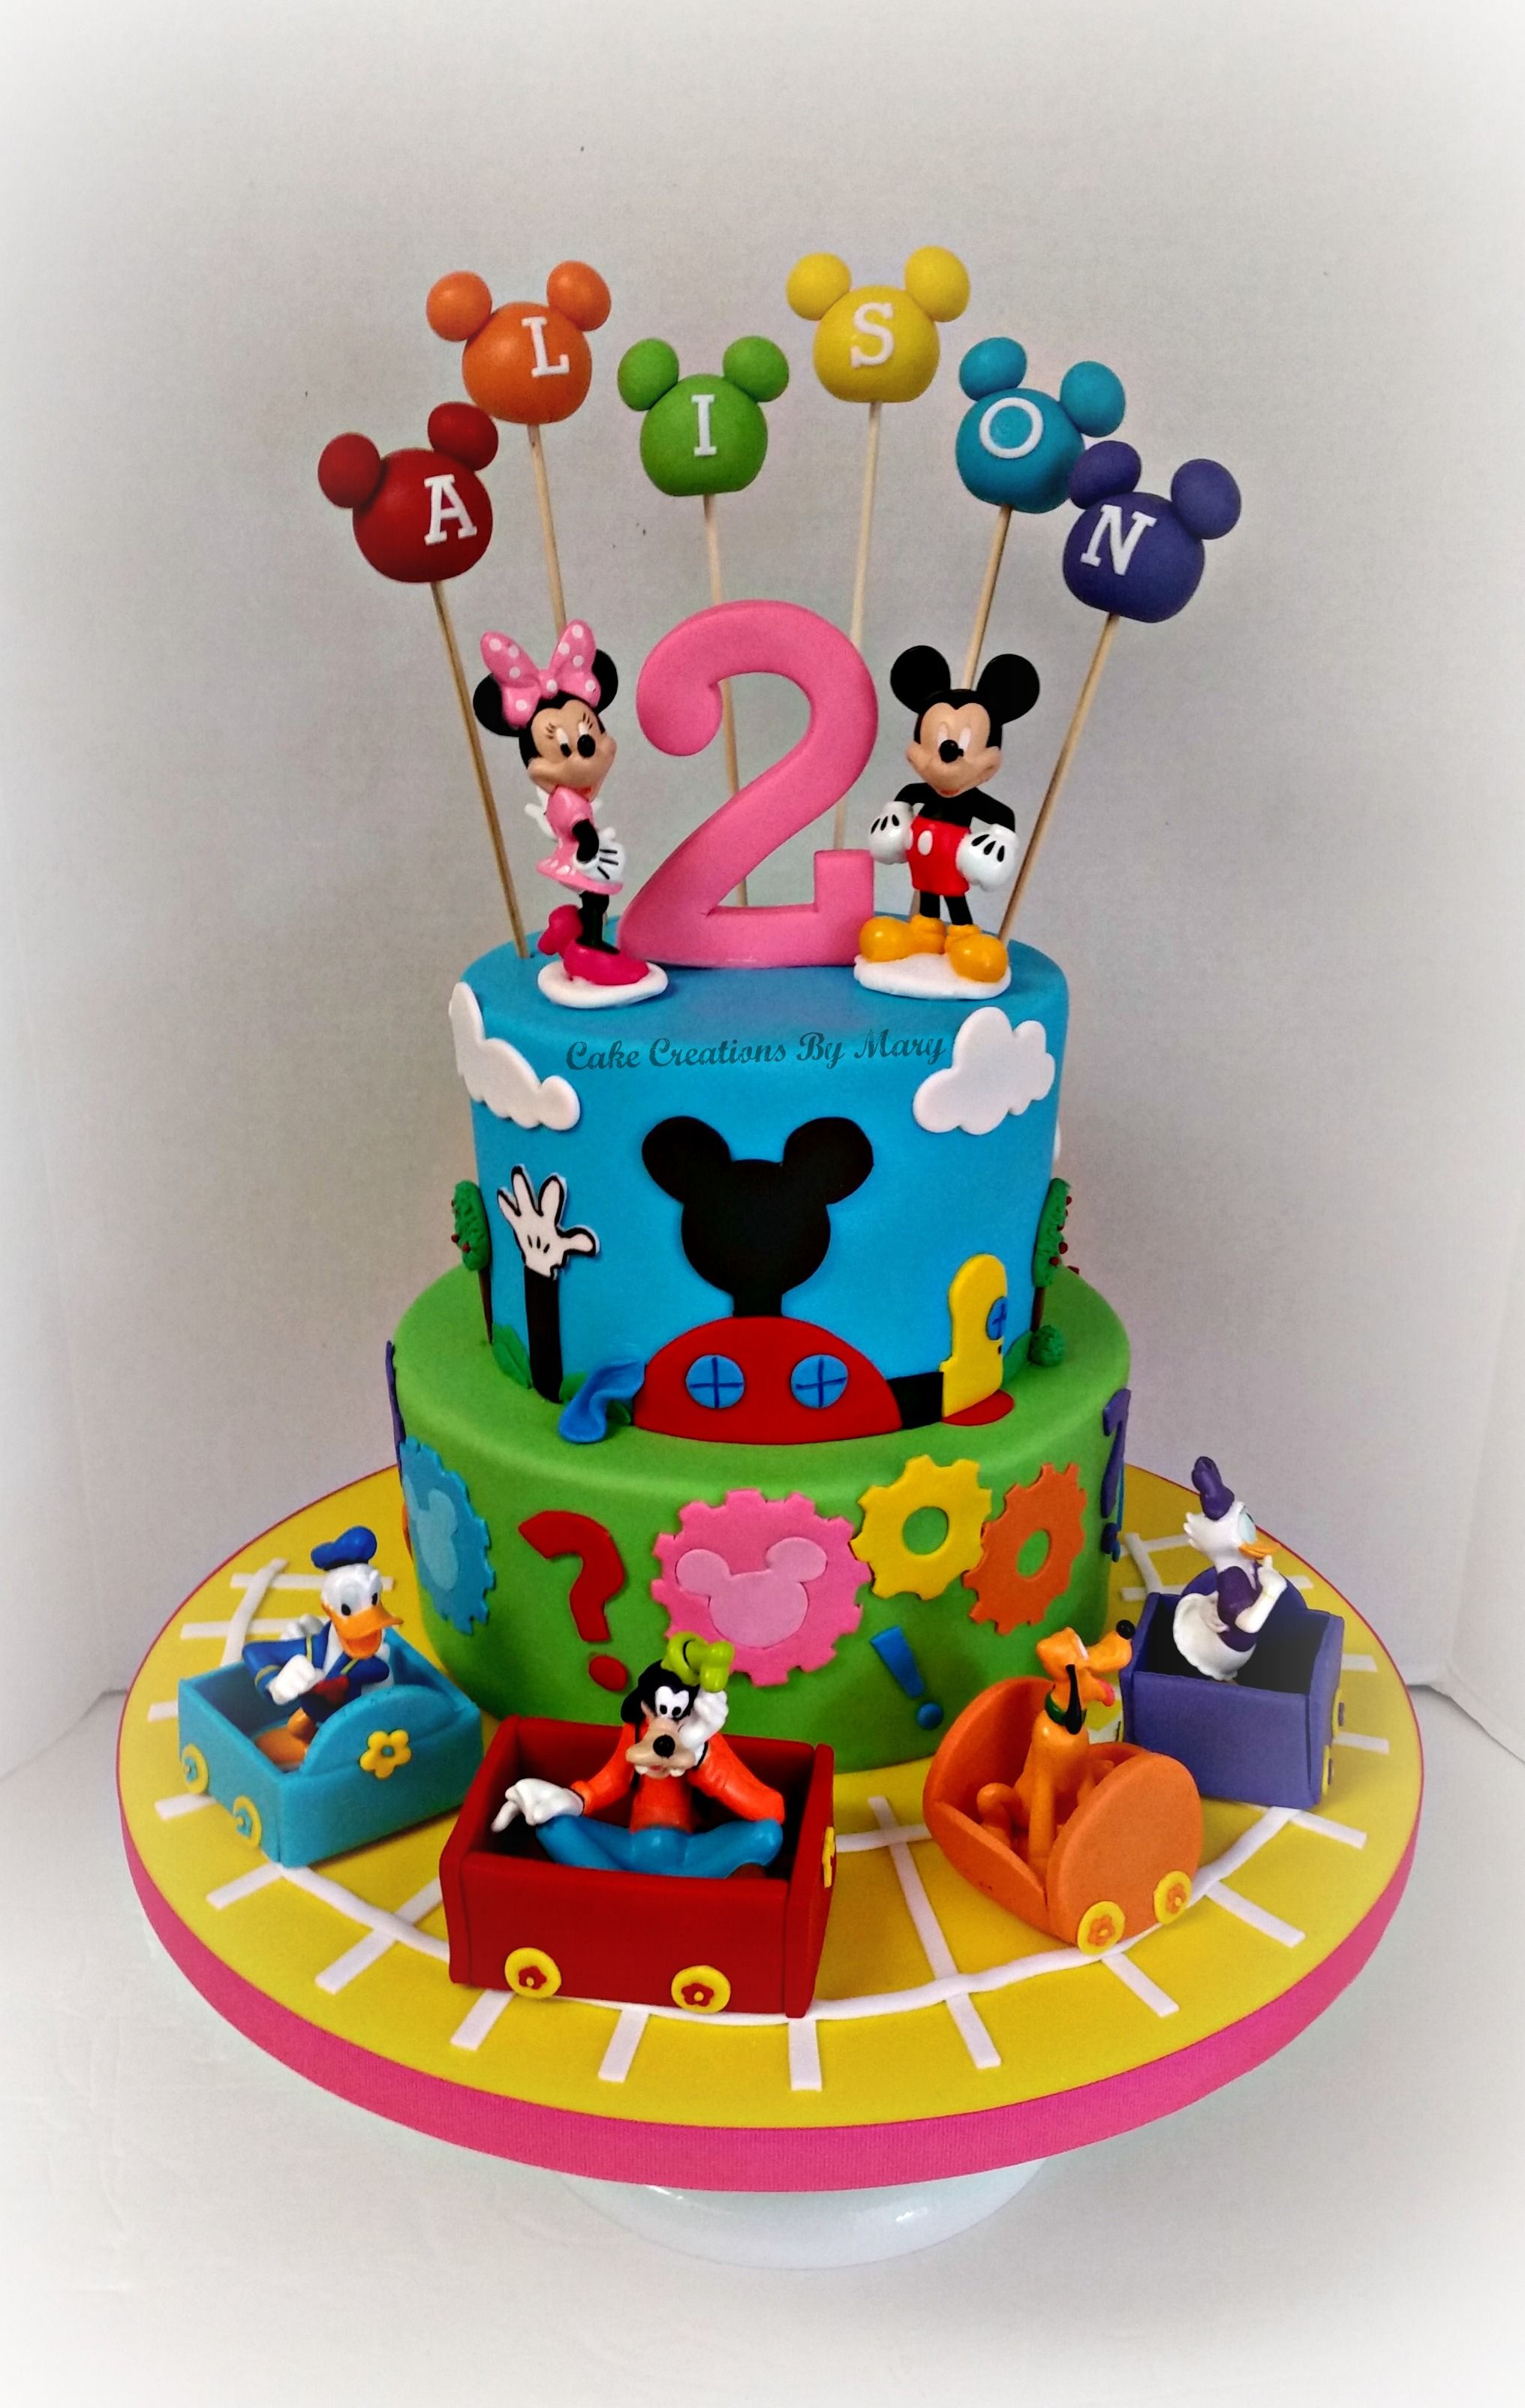 32+ Pretty Image of Mickey Mouse Clubhouse Birthday Cake